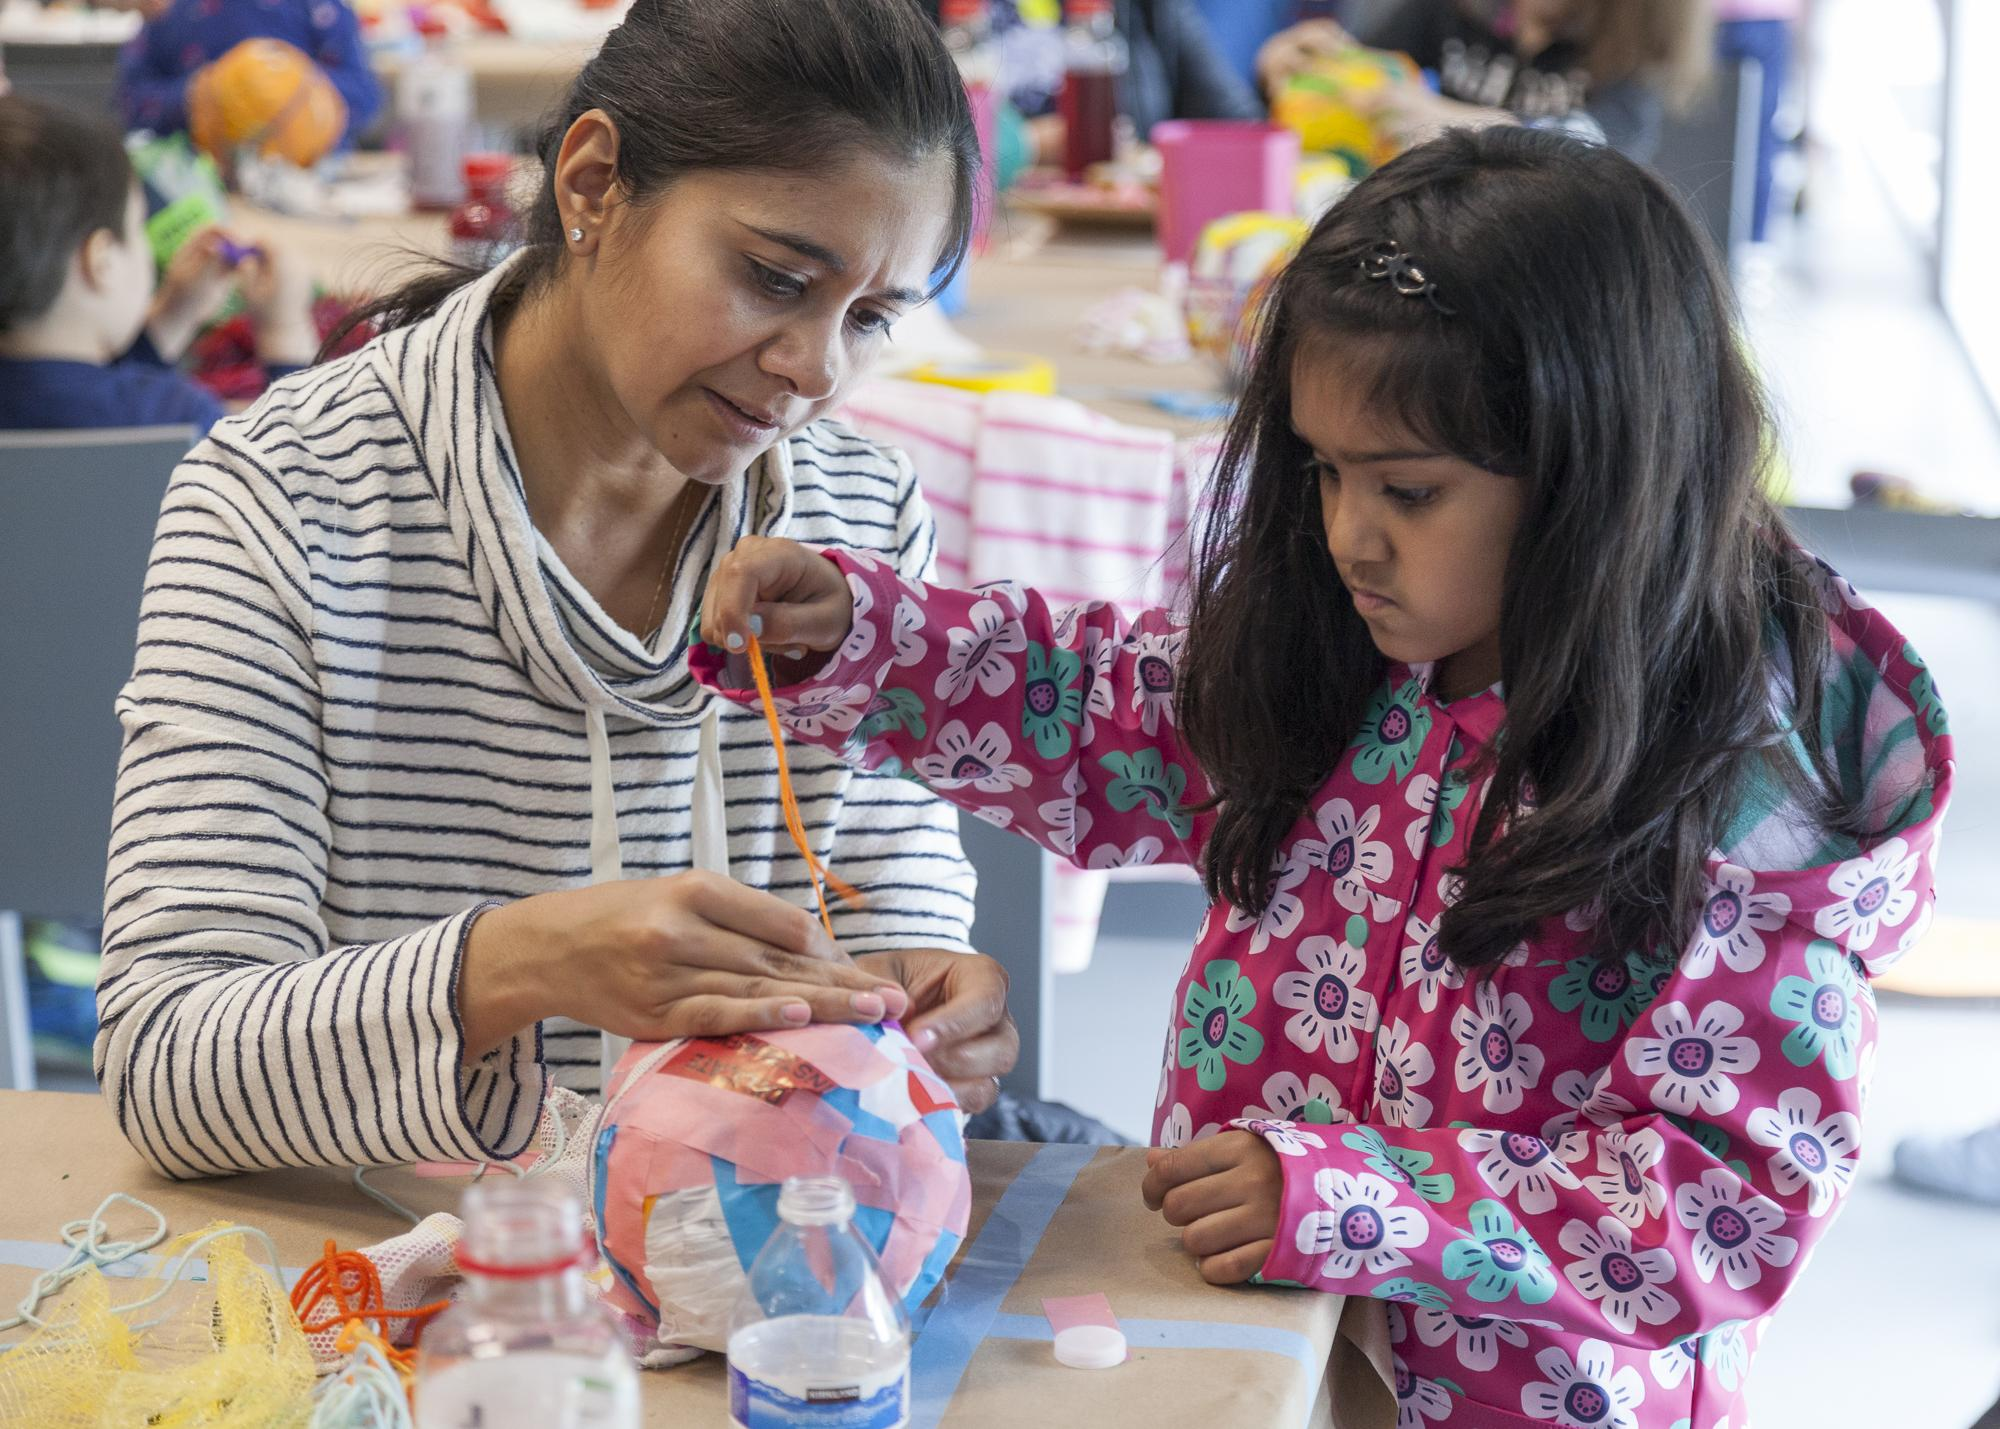 A child in a pink floral coat wraps an orange string around a colorful paper ball. An adult holds the string in place, assisting the child.